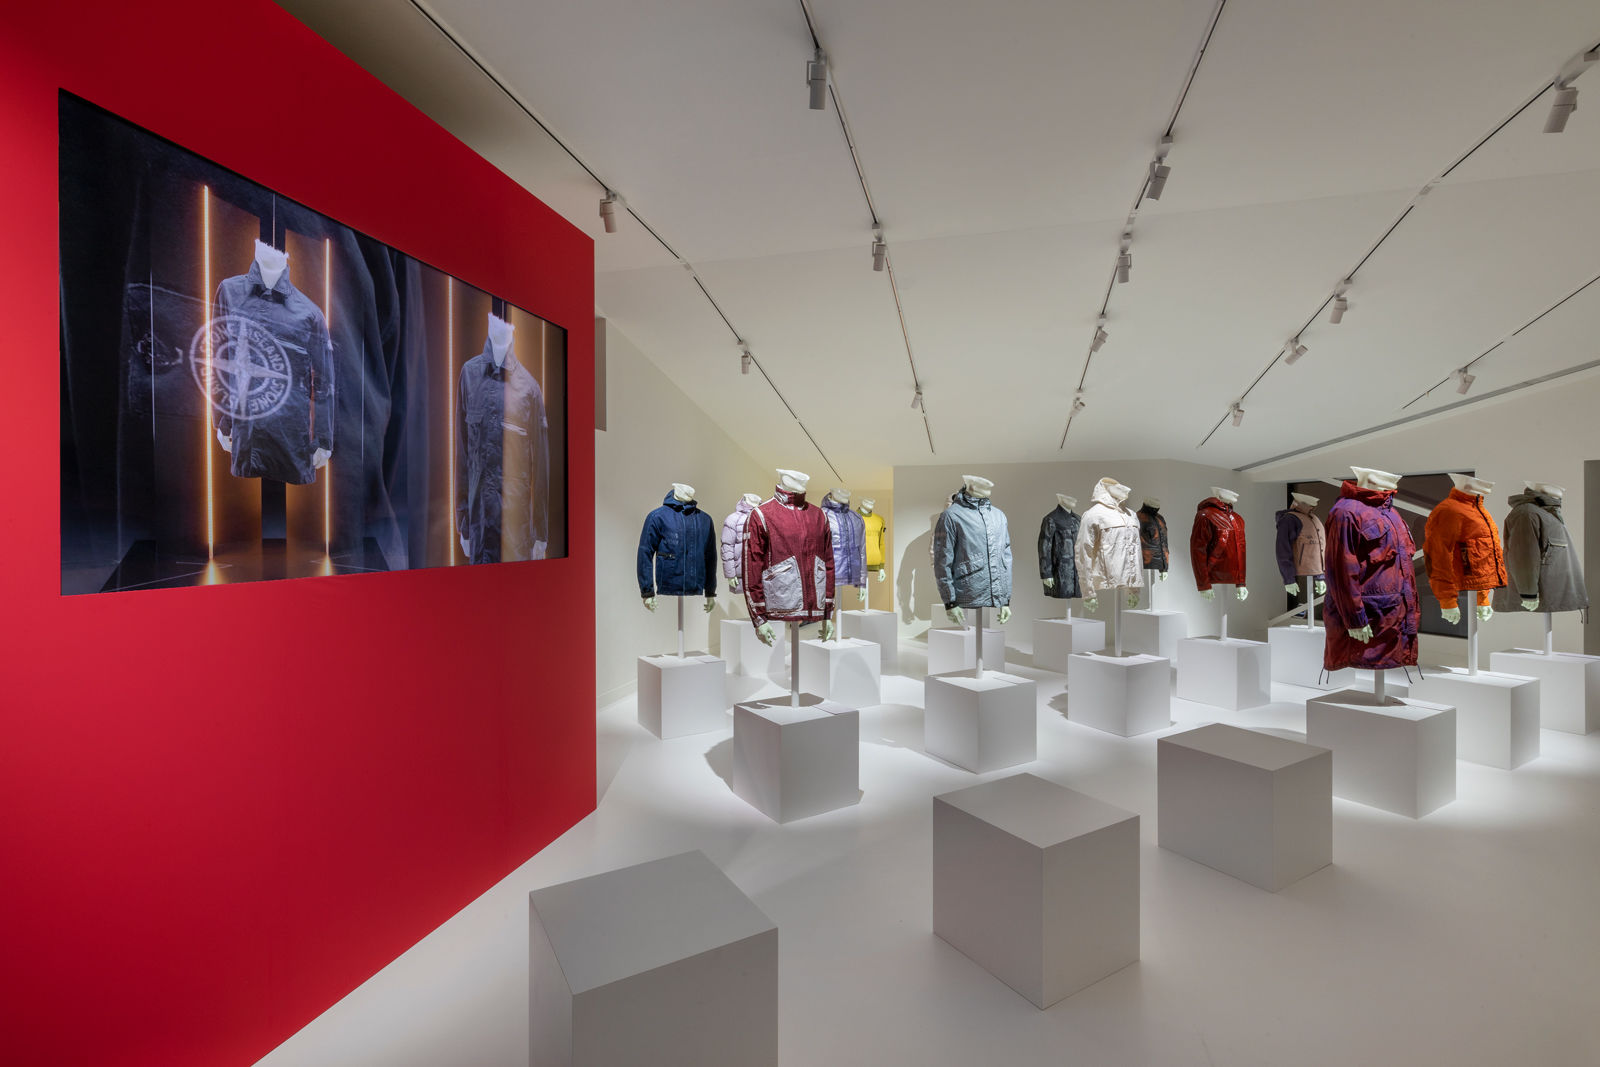 Exhibition space with mannequins wearing Stone Island jackets in different styles and colors on the right and a red panel with a large screen showing images of other mannequins on the left.